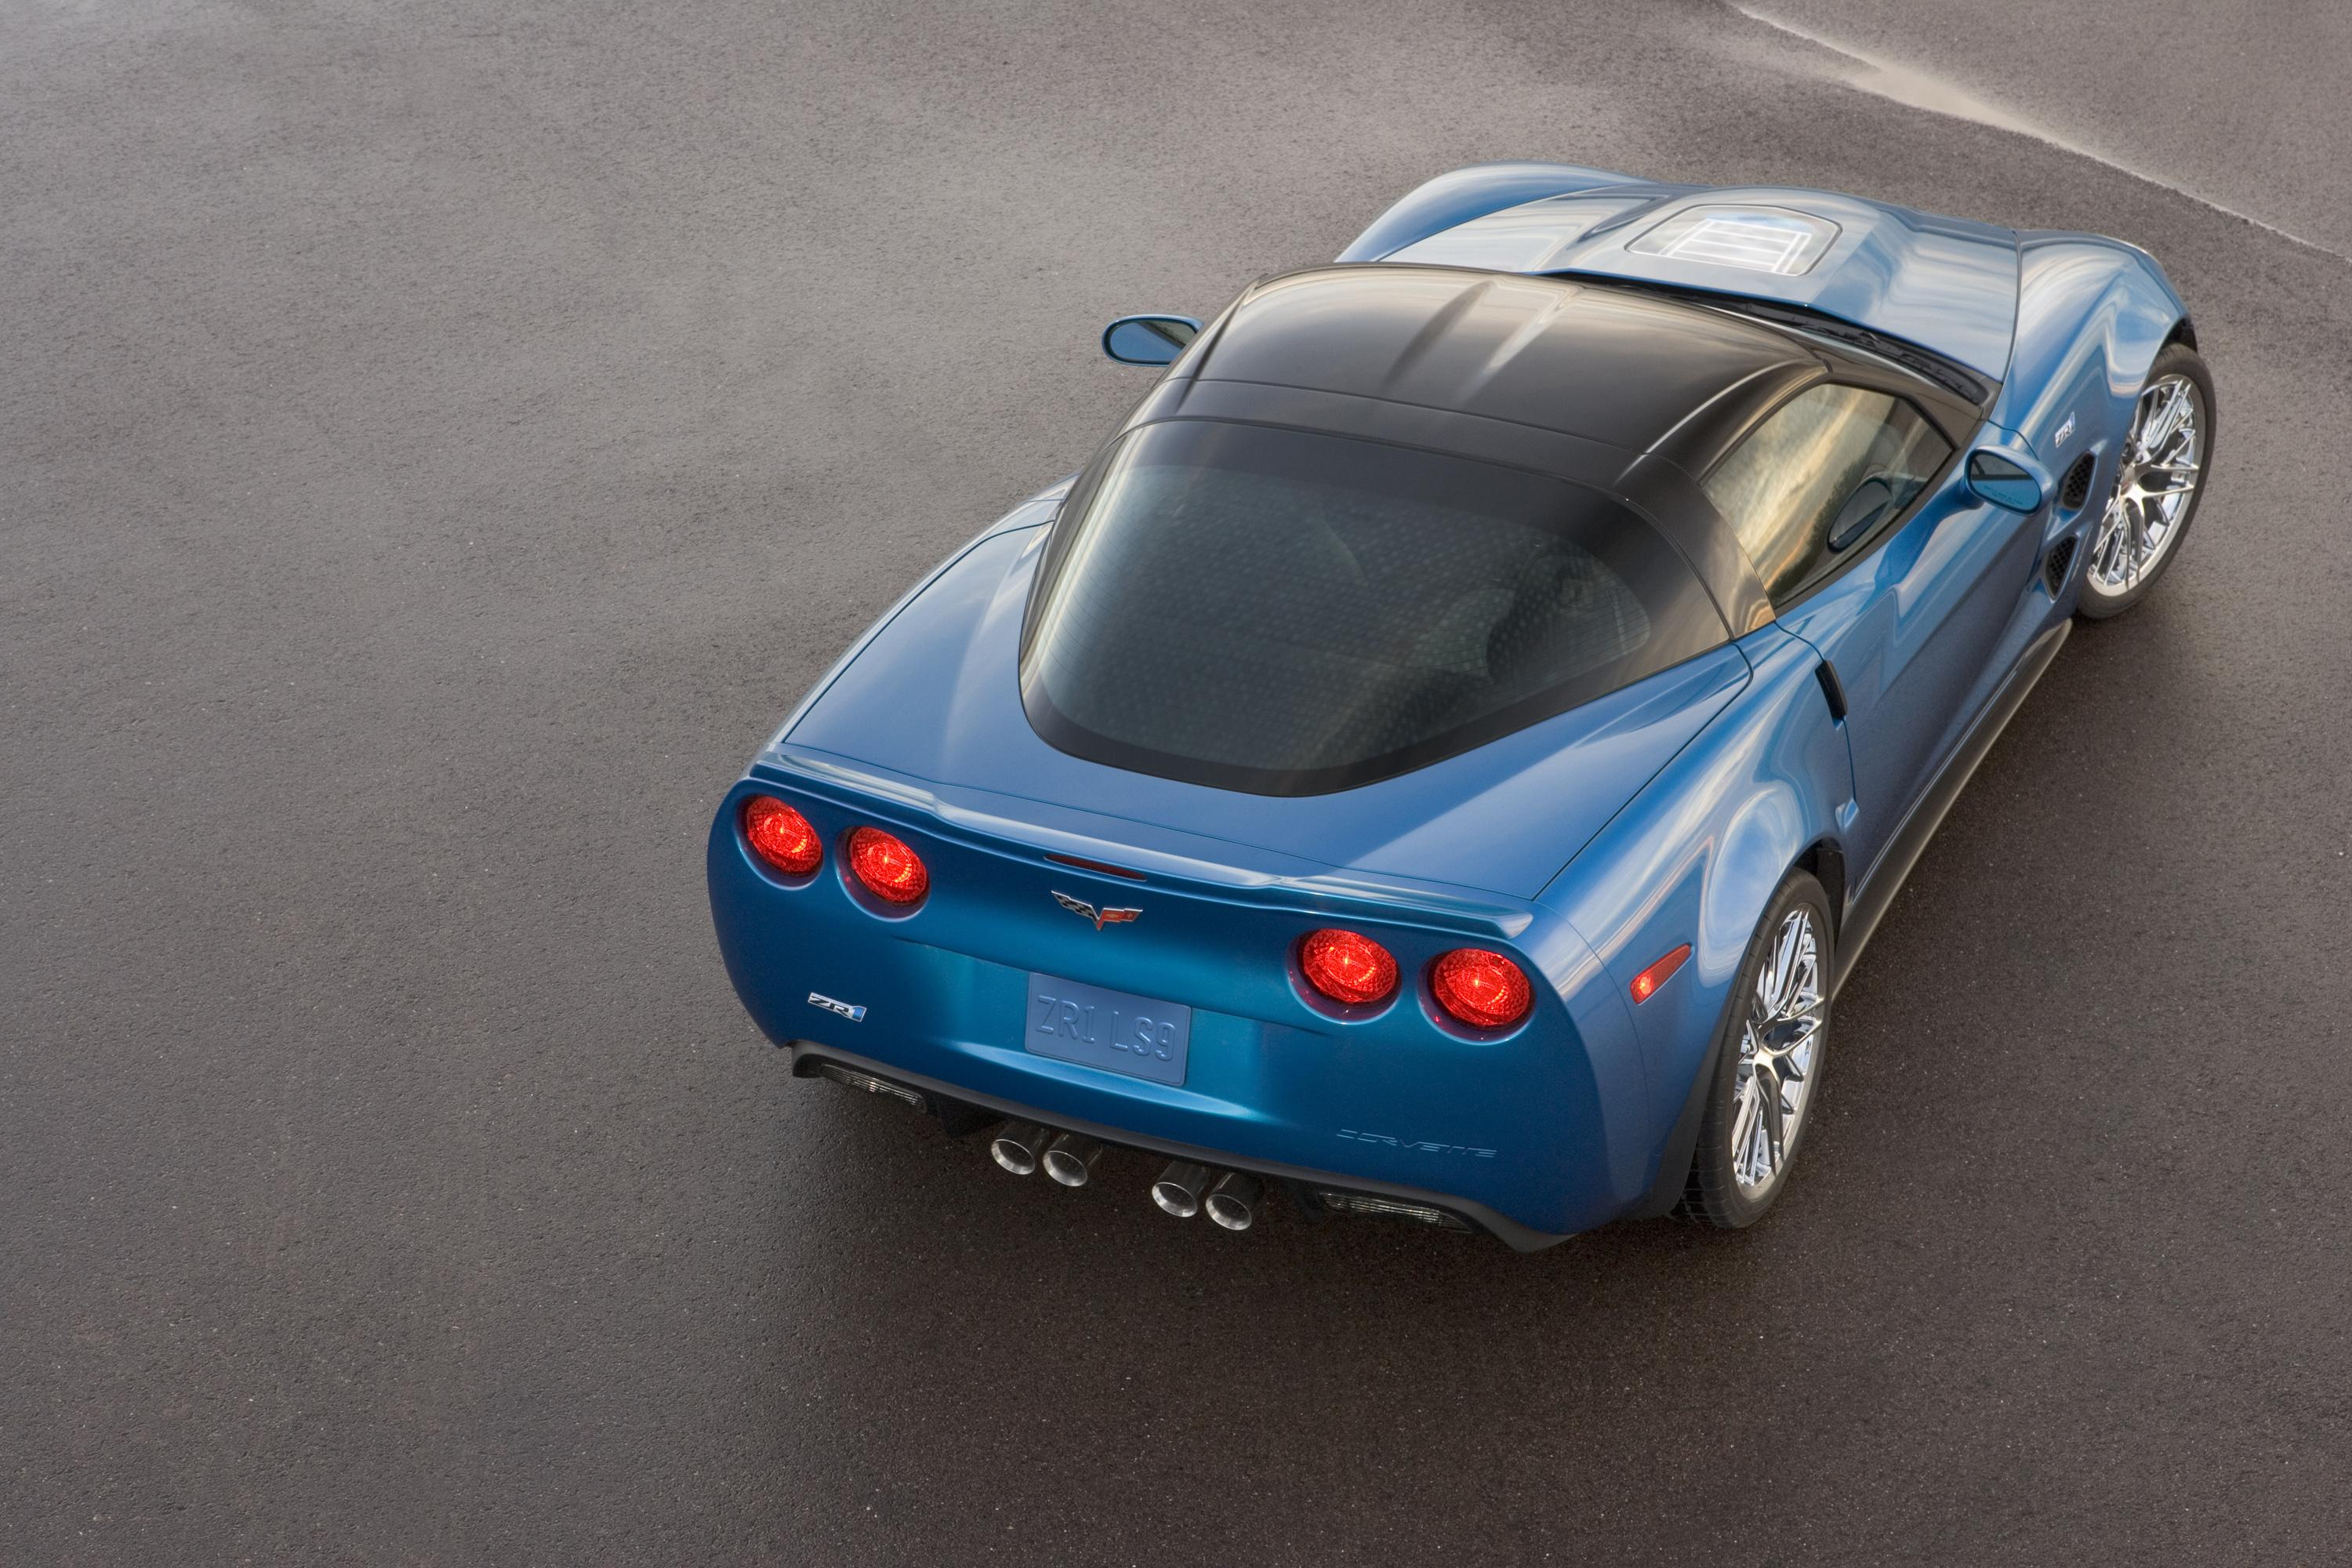 Superieur 2009 Chevrolet Corvette ZR1 Review   Top Speed. »